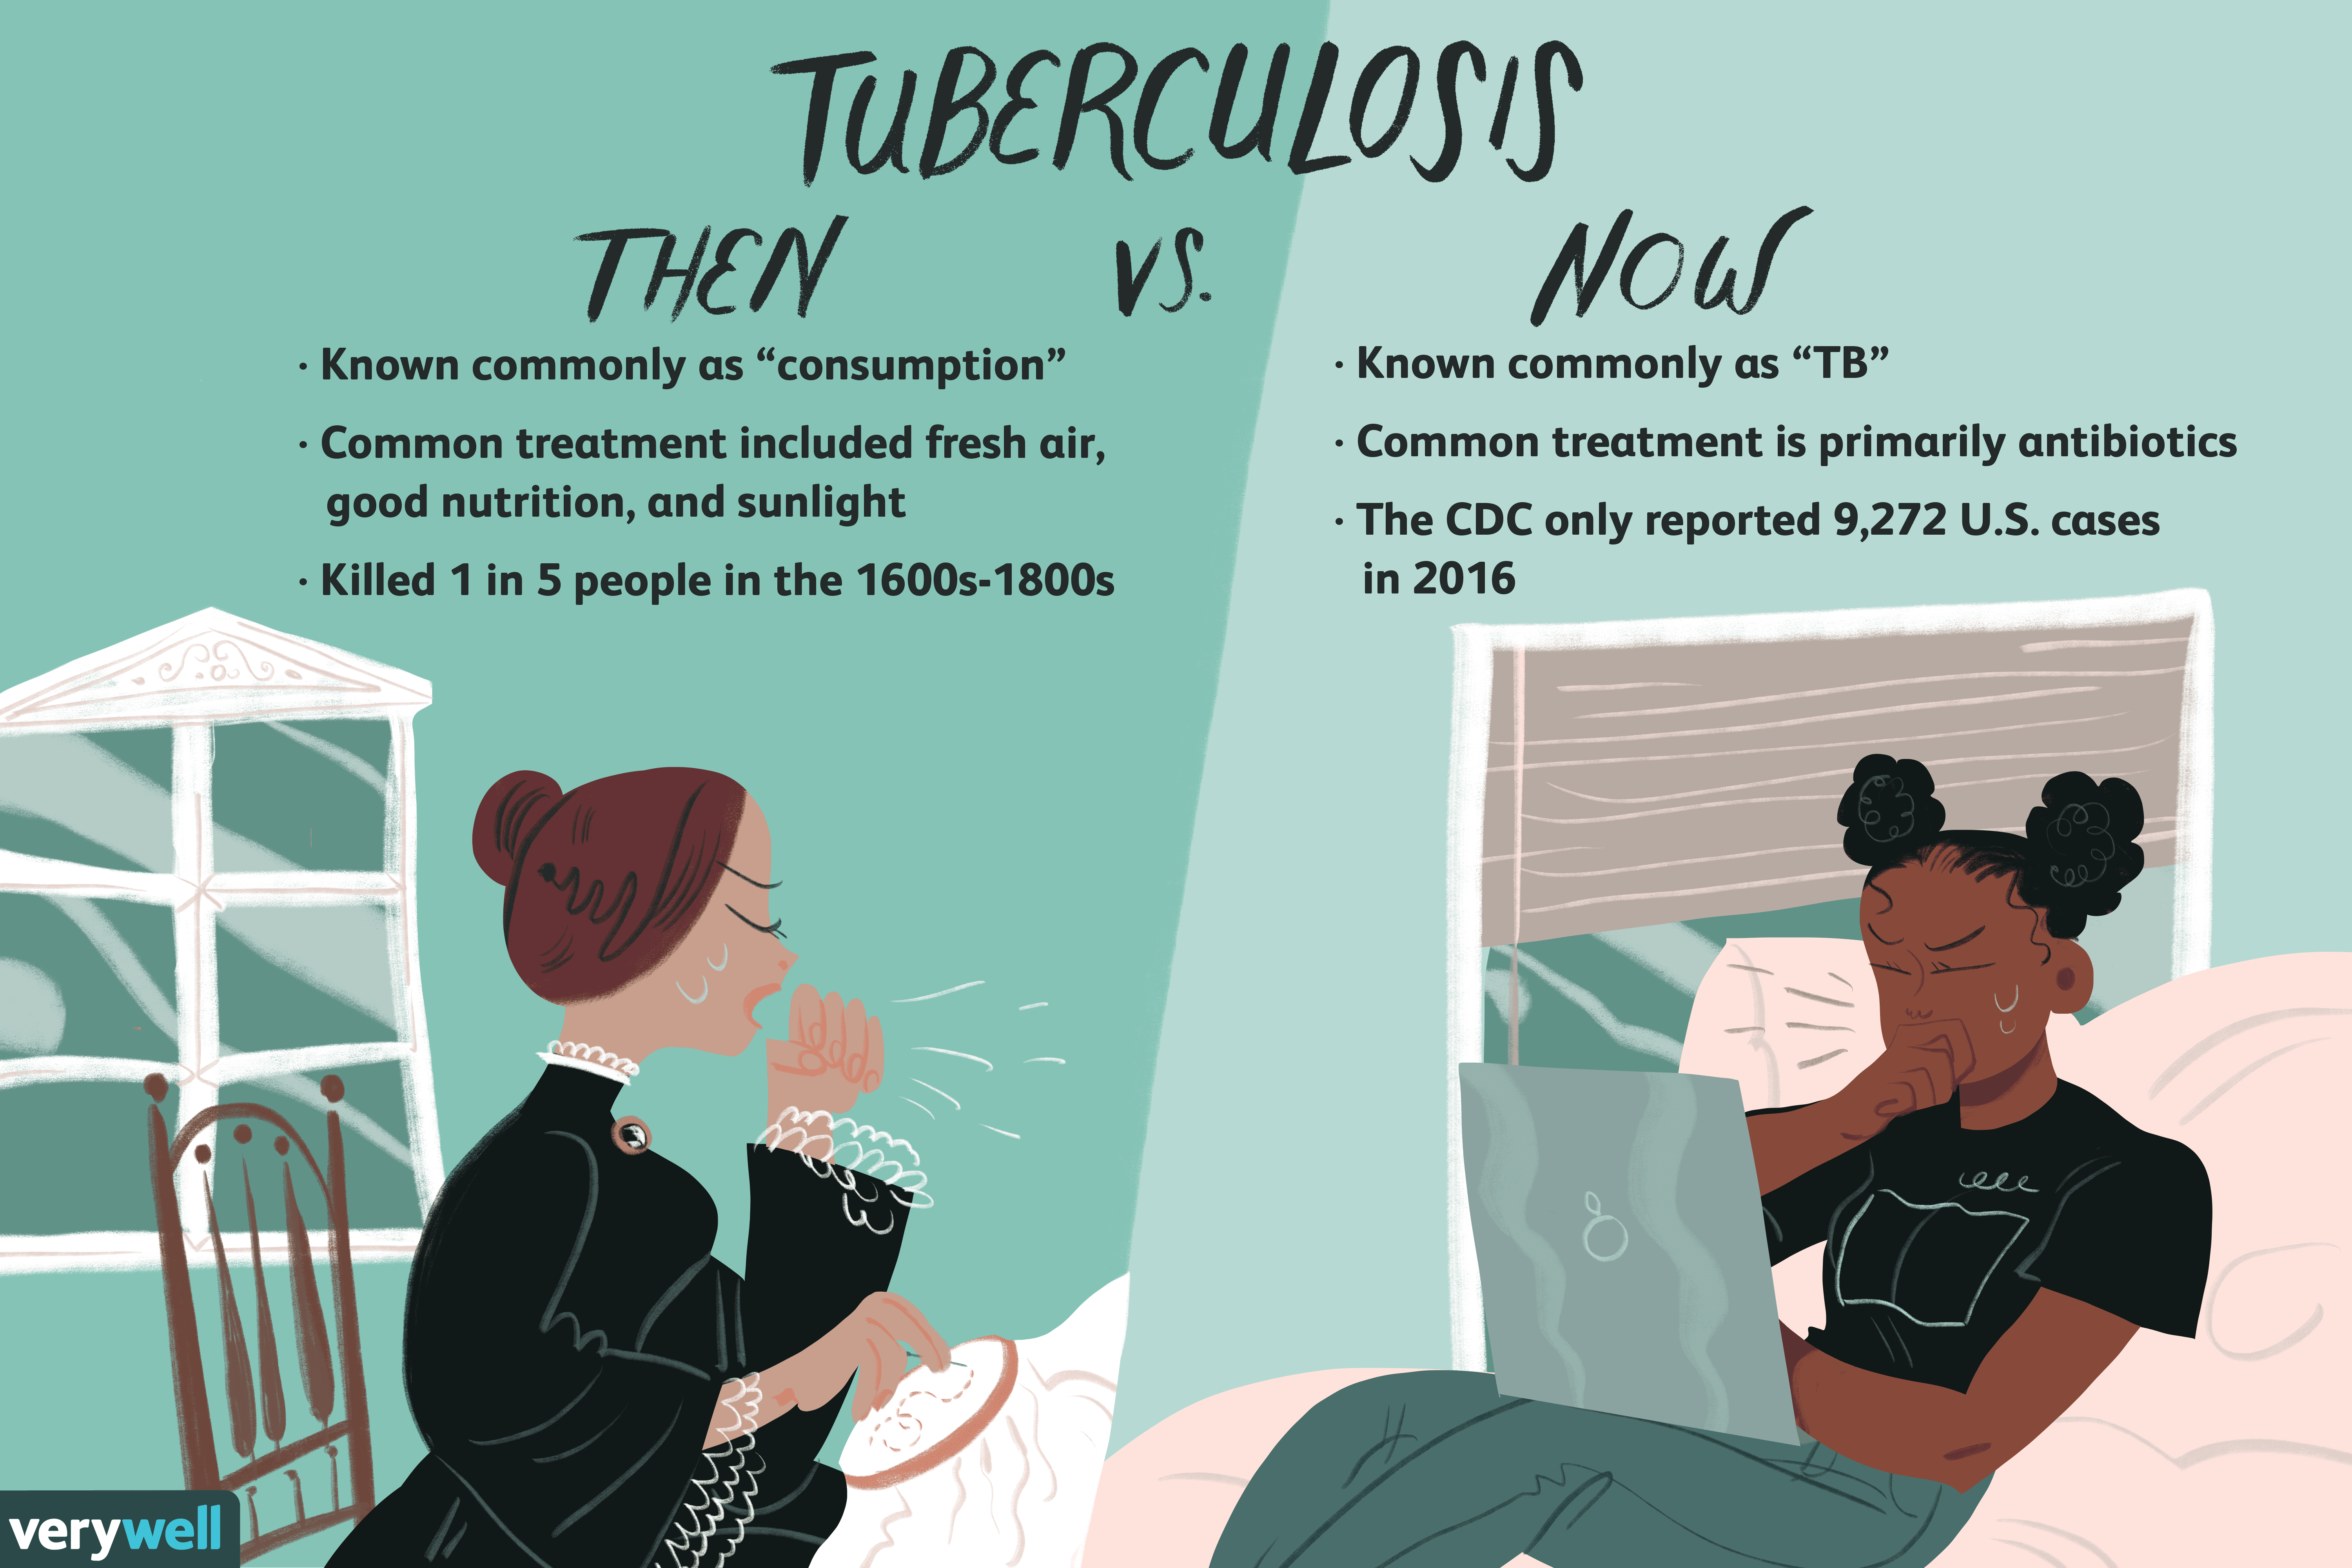 Tuberculosis: Then and Now